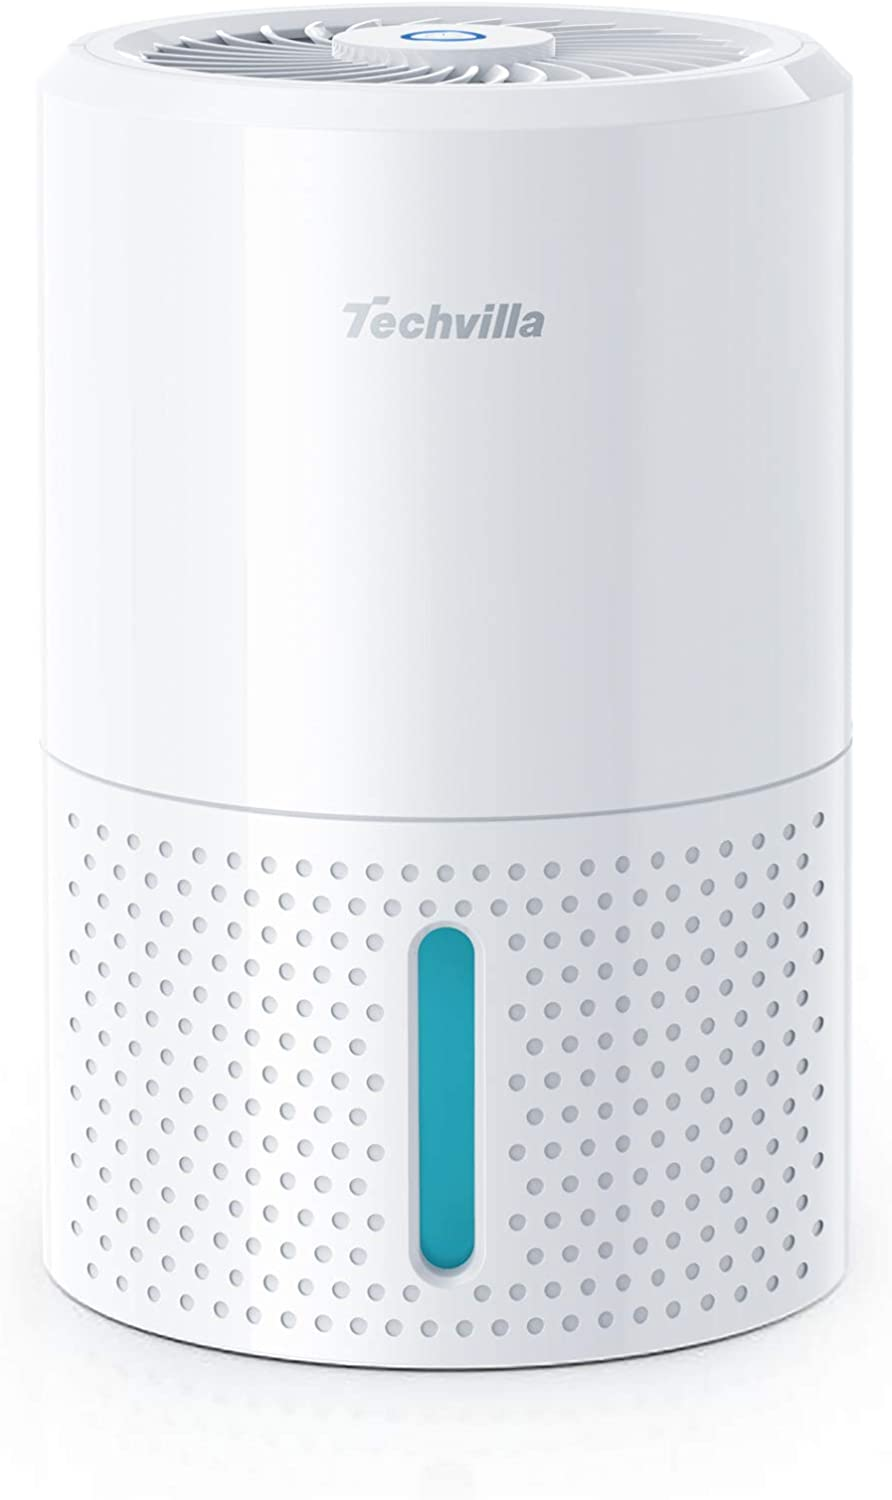 TECHVILLA Mini Dehumidifier with Auto-Off Function and LED Indicator 1000ml Small Dehumidifer for Home Bedroom Bathroom Basement Quiet Operation and Portable